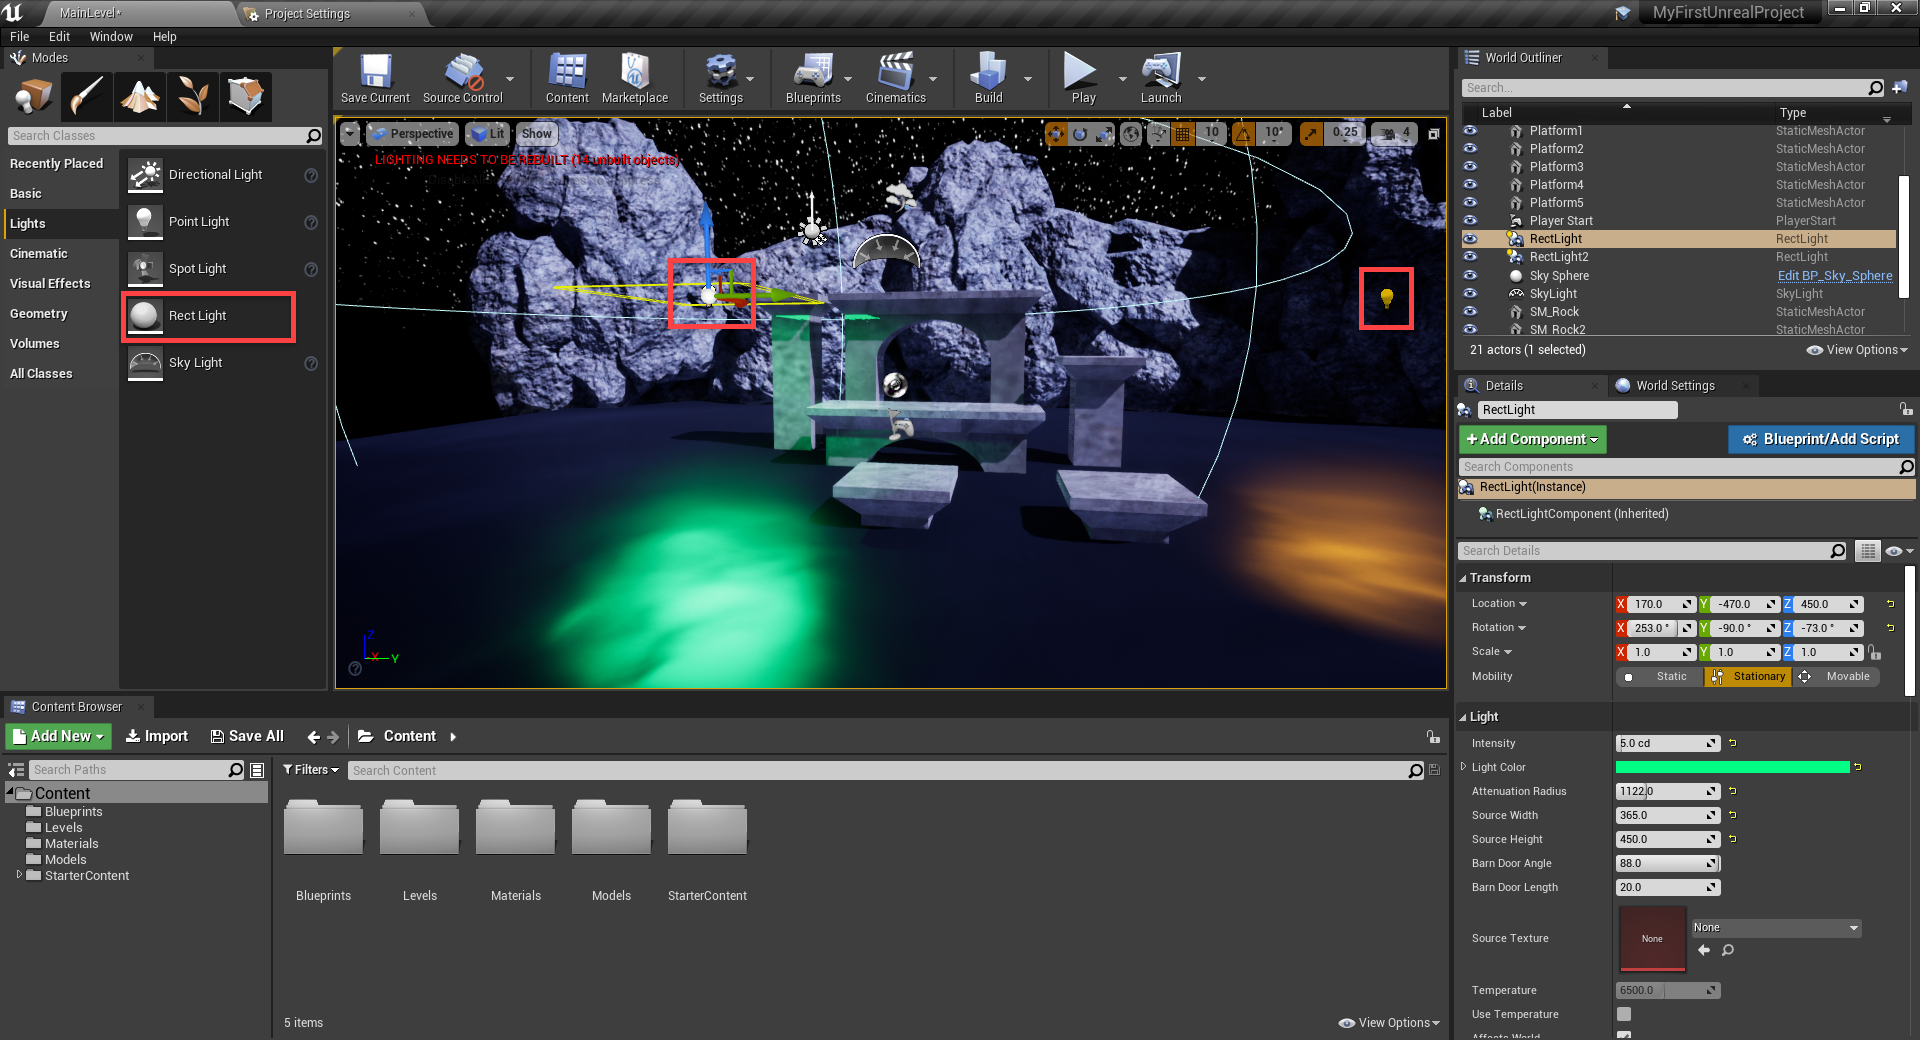 Unreal Engine with RectLight added to scene